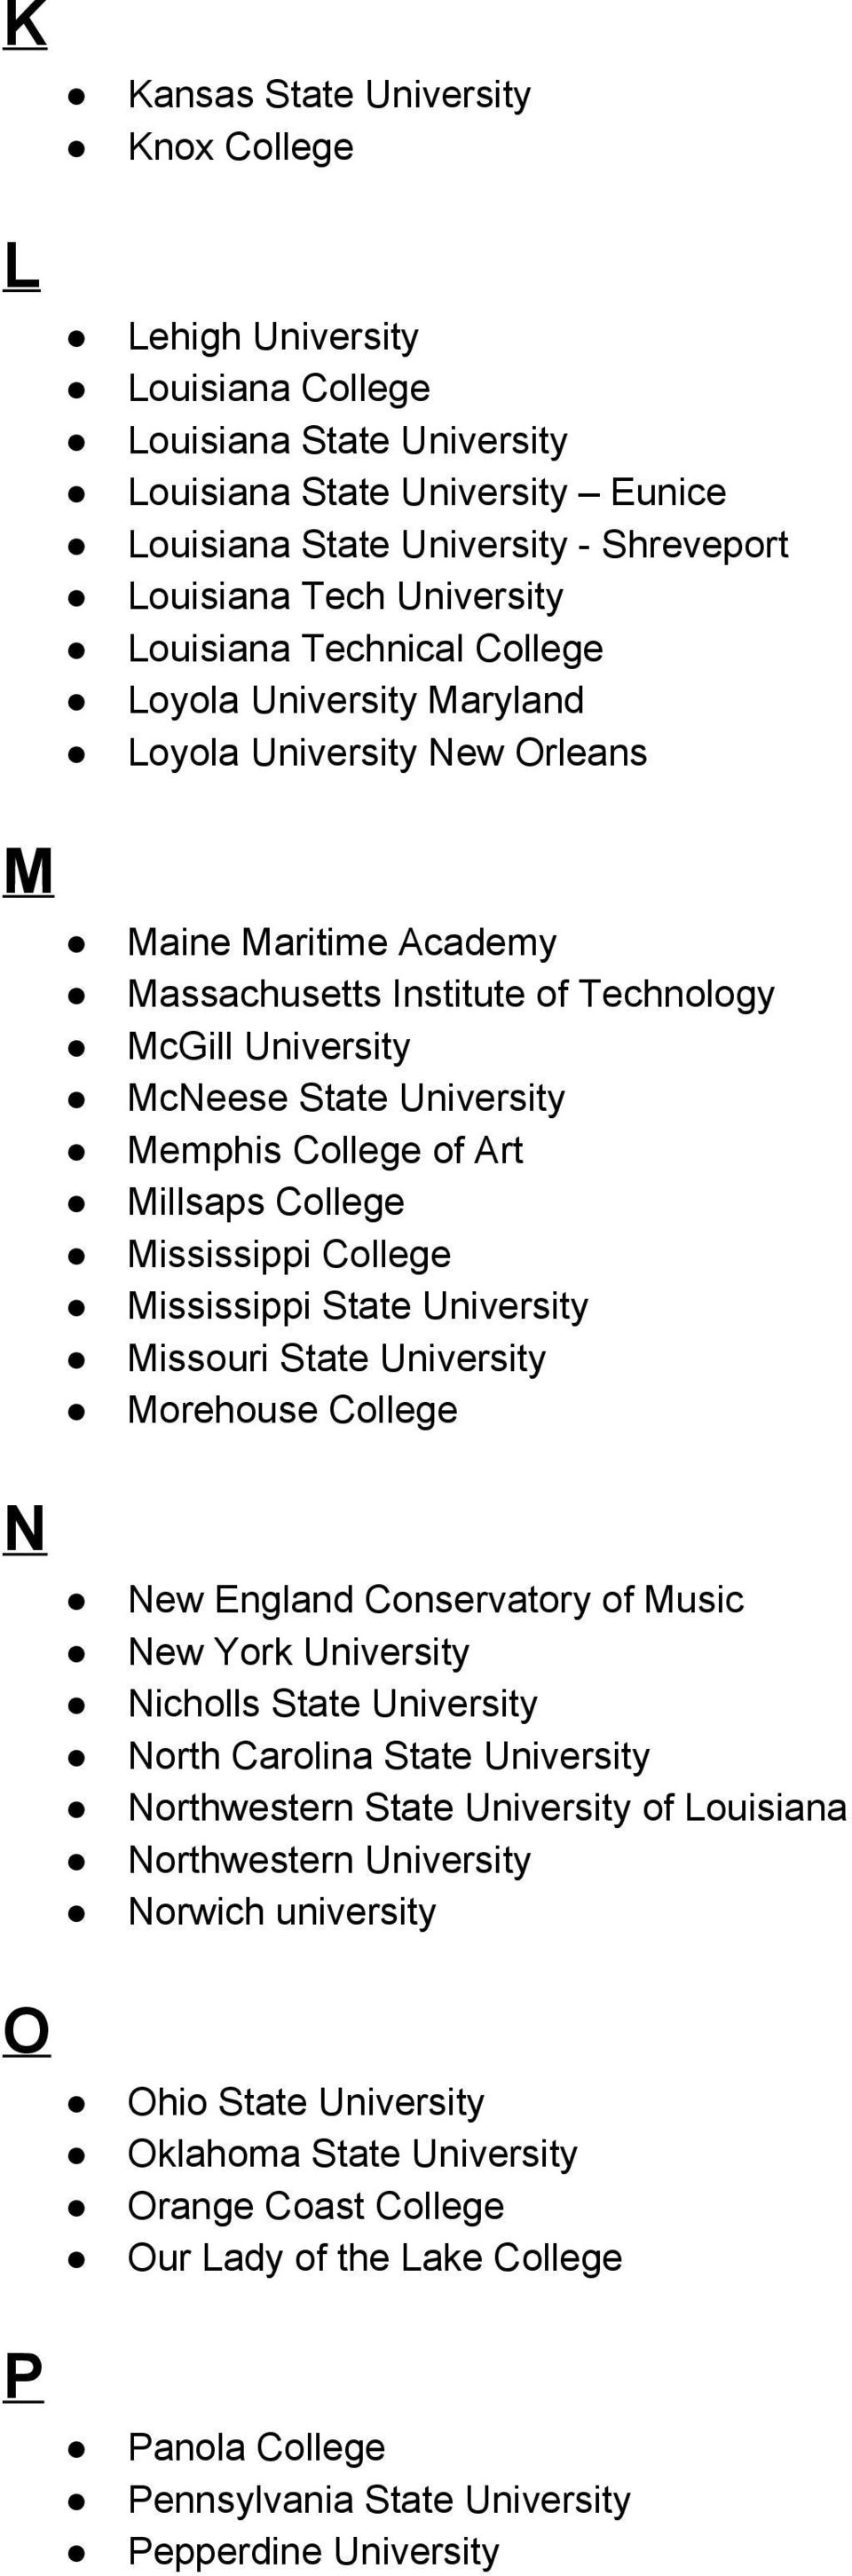 University Memphis College of Art Millsaps College Mississippi College Mississippi State University Missouri State University Morehouse College N O P New England Conservatory of Music New York